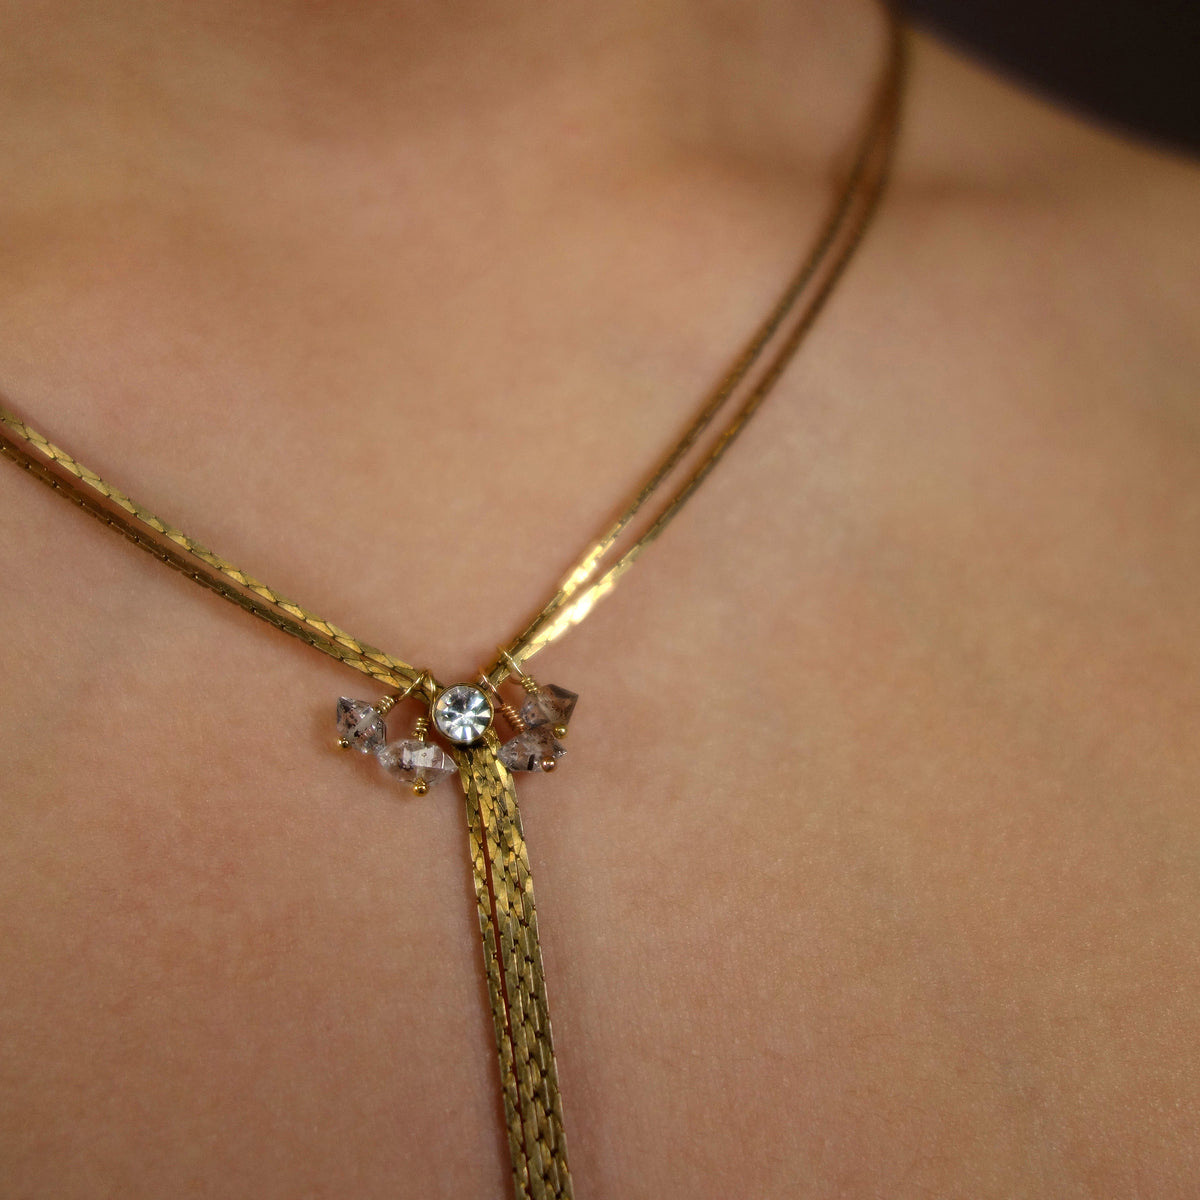 Starlight, Star Bright: gold and Herkimer diamond necklace